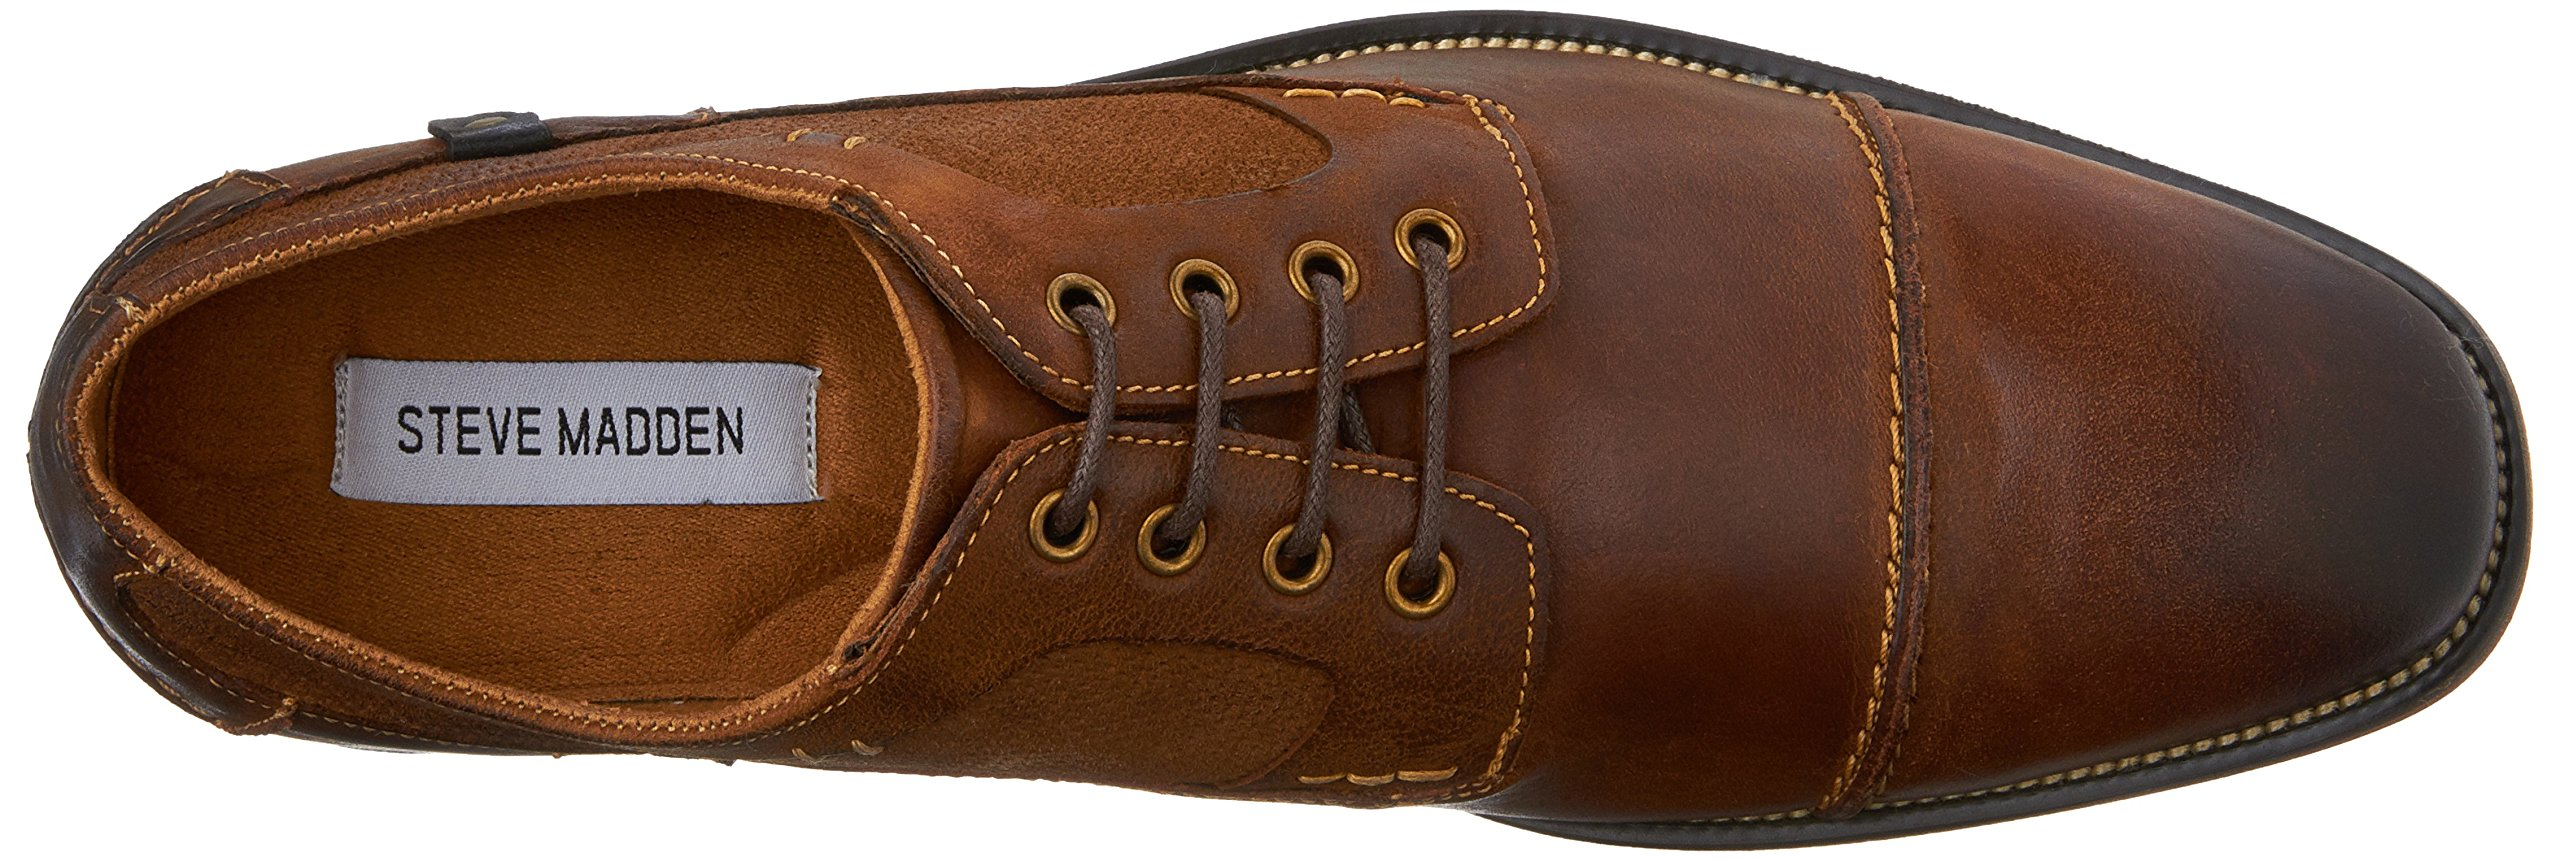 de66940c9c5 Steve Madden Men s Jagwar - SMJagwar   Oxfords   Clothing